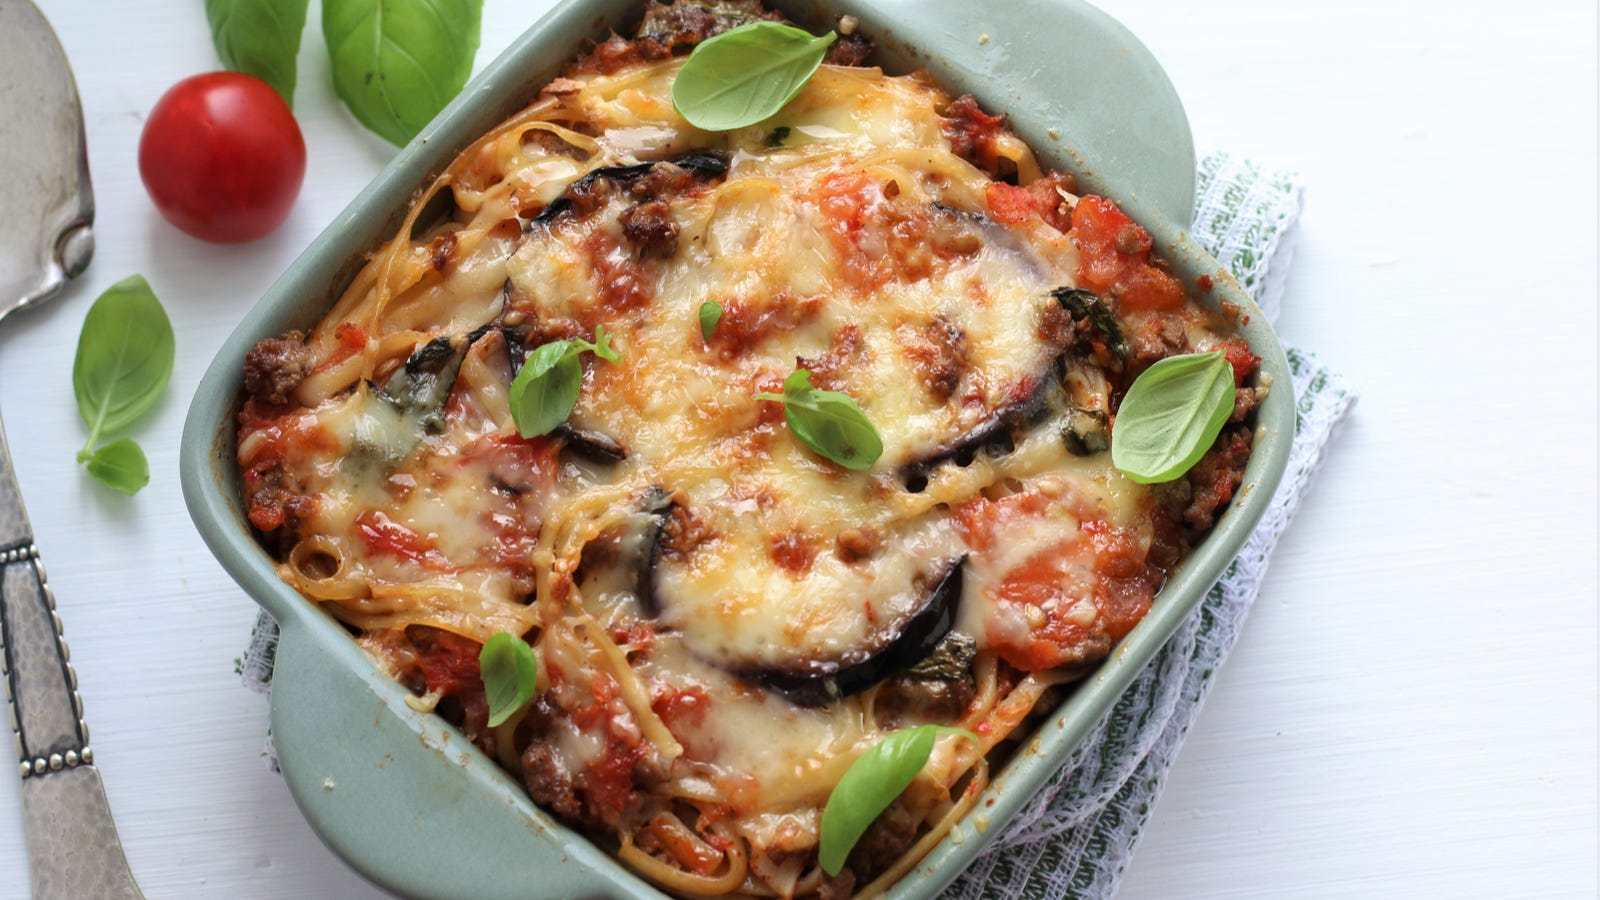 Baked eggplant over linguini with basil and cherry tomatoes on the side.